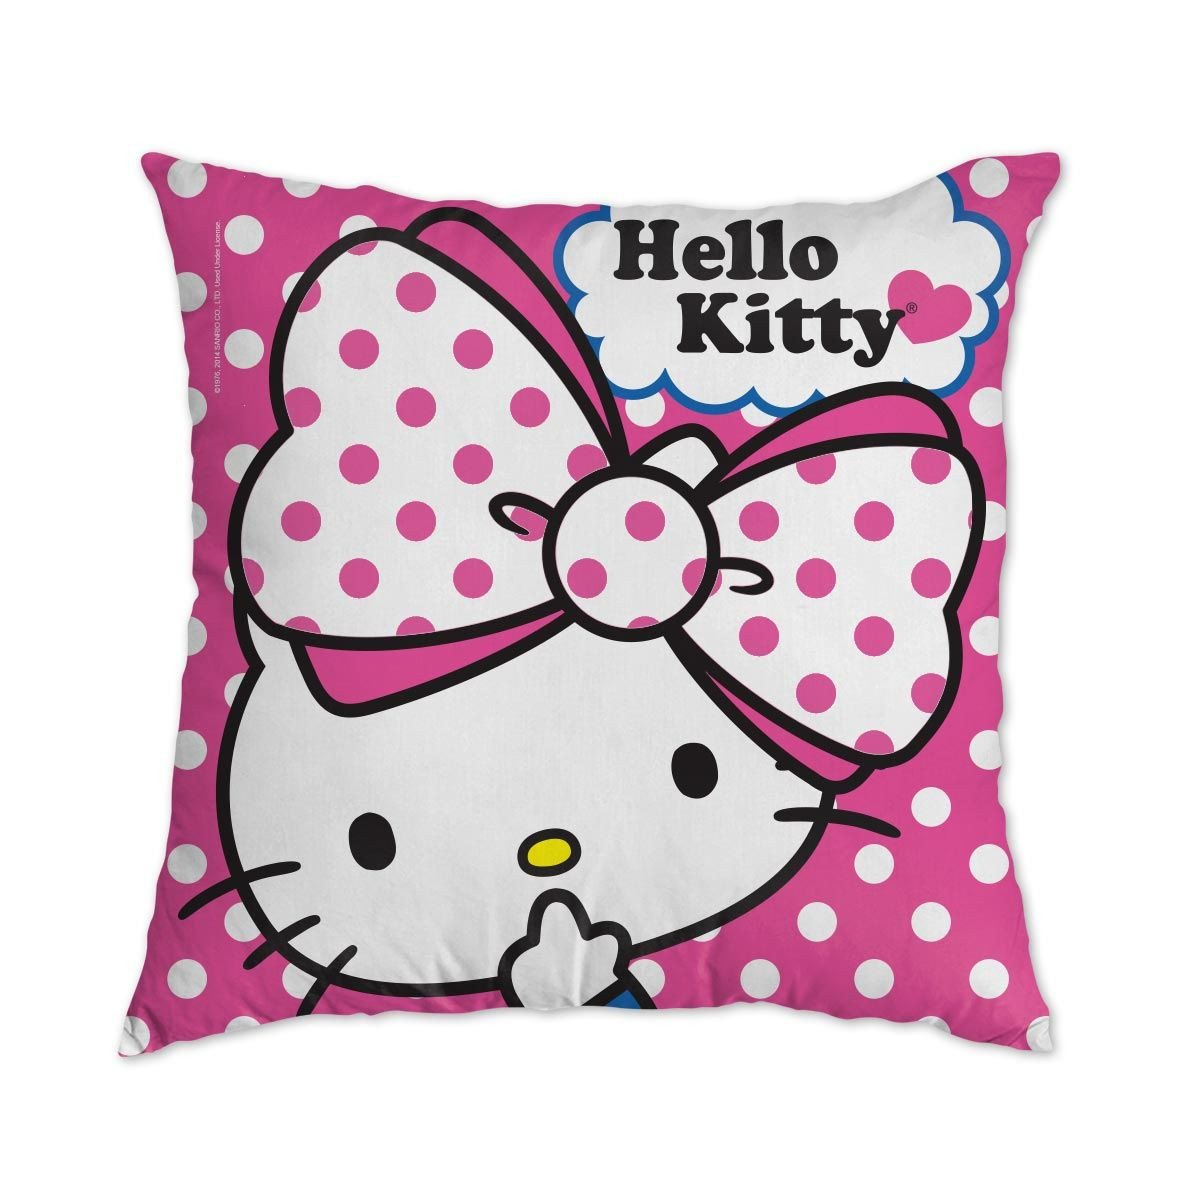 Hello Kitty Bedroom In A Box Inspirational Almofada Hello Kitty Big Ribbon